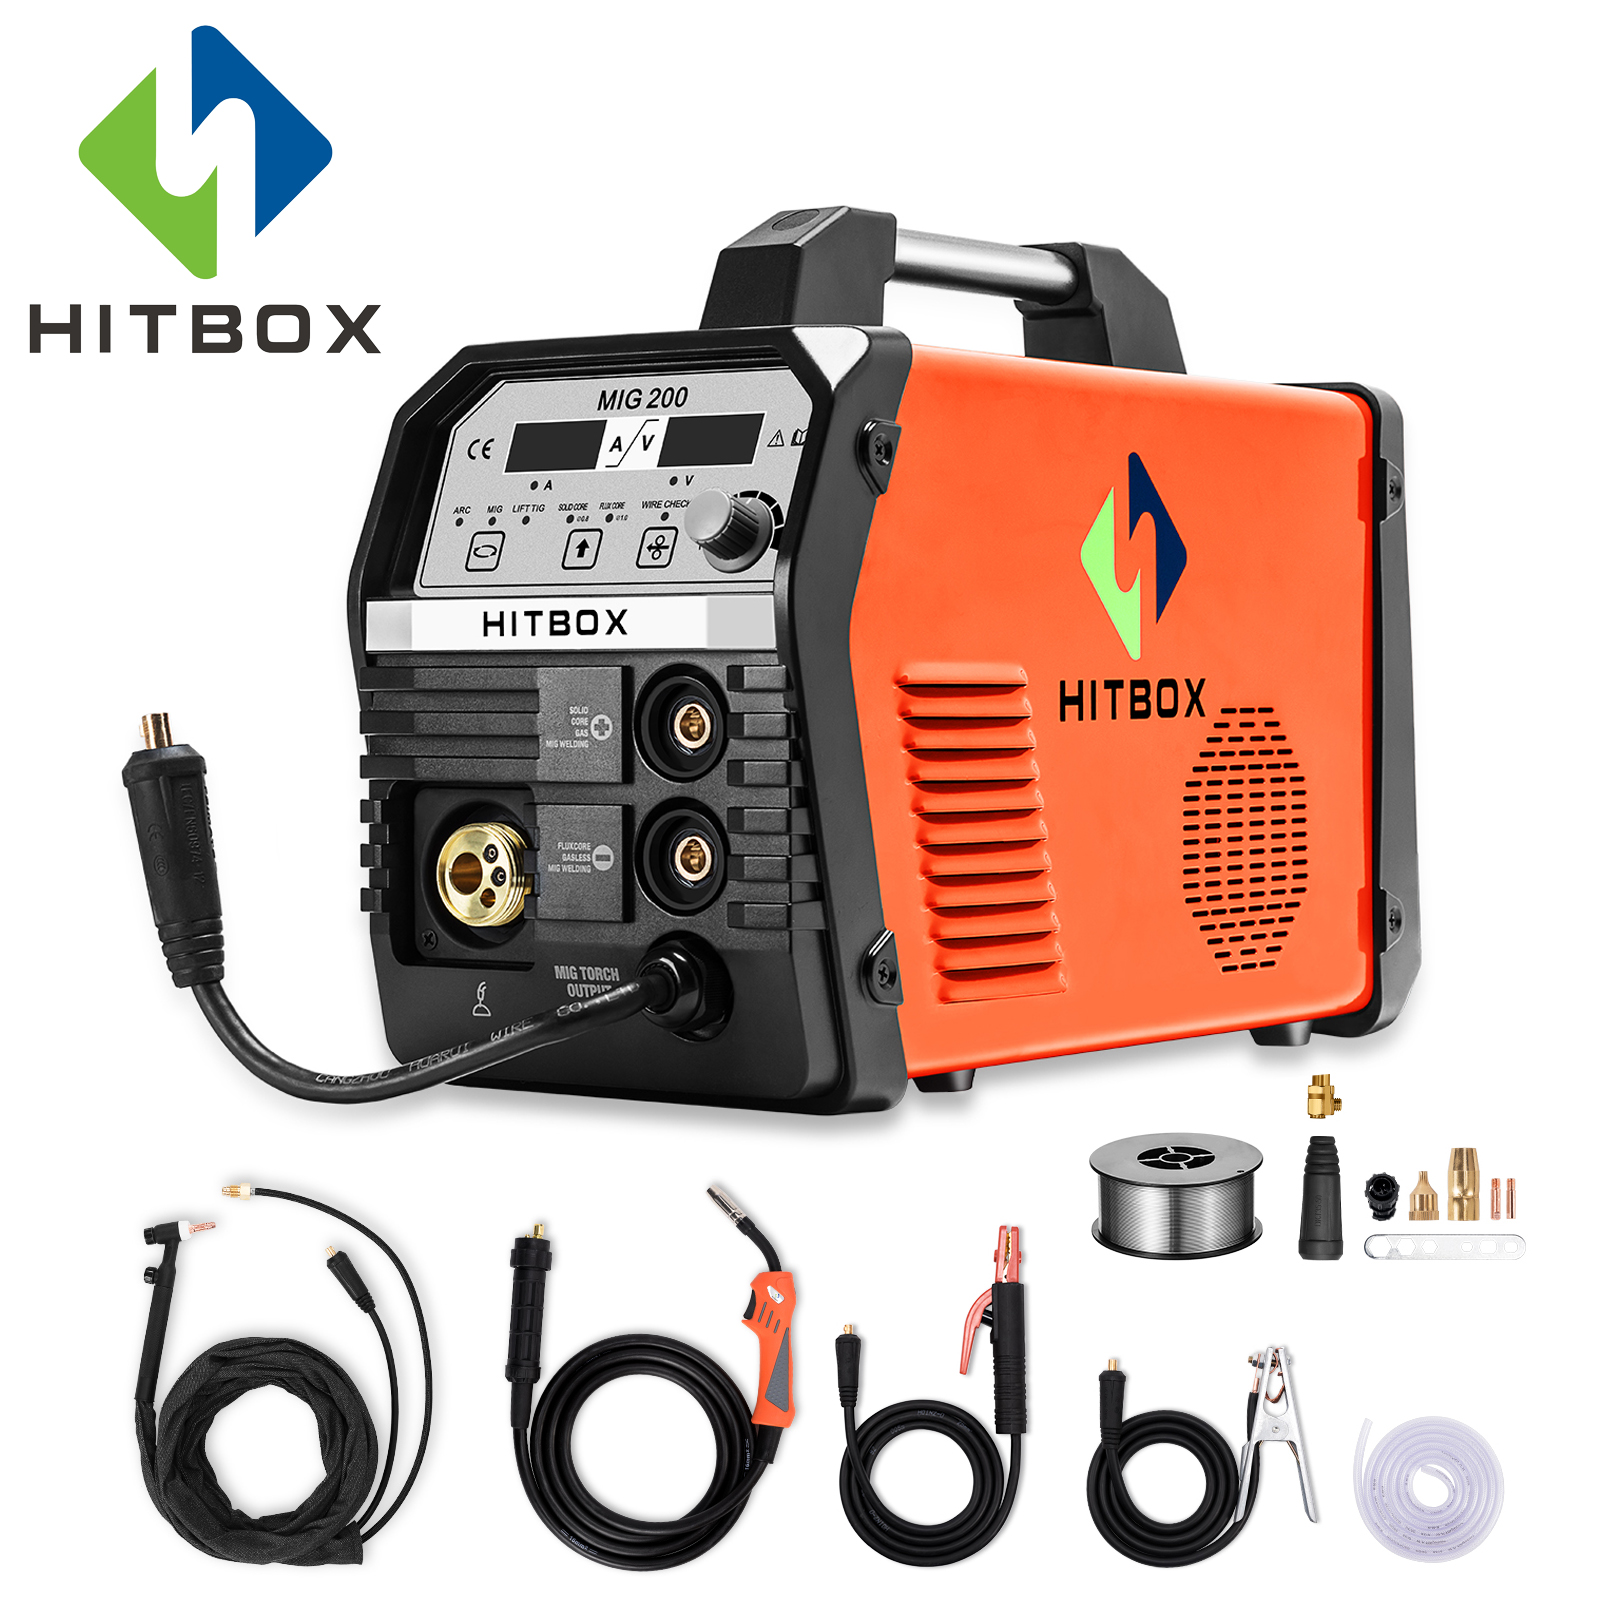 HITBOX MIG Welders MIG200 220V Gas MIG Welding Machine 200A For Stainless And Carbon Steel Welding